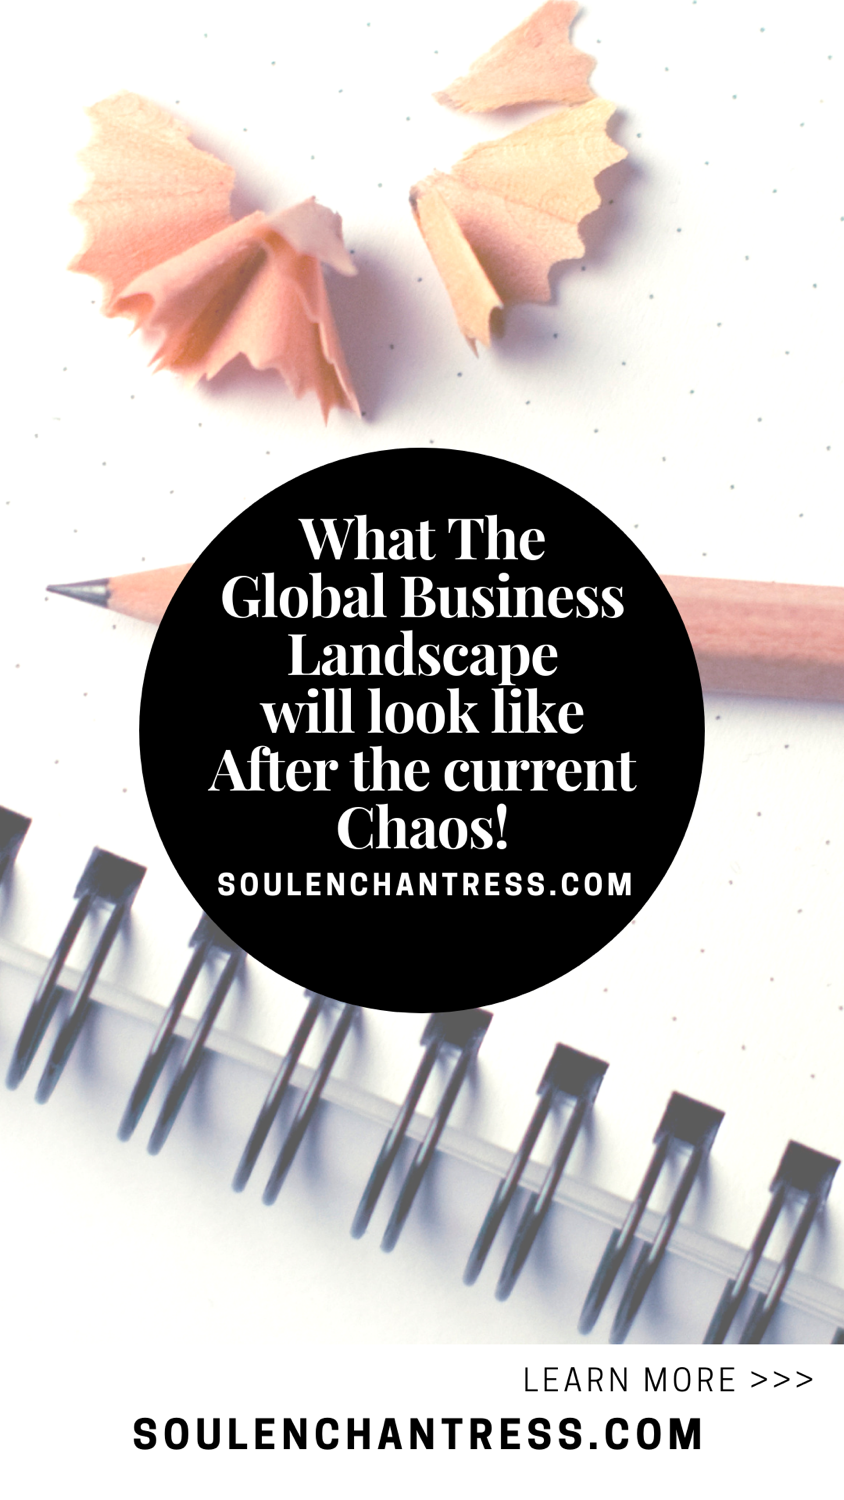 soul enchantress, business strategy, business success, what he business landscape will look like after the chaos